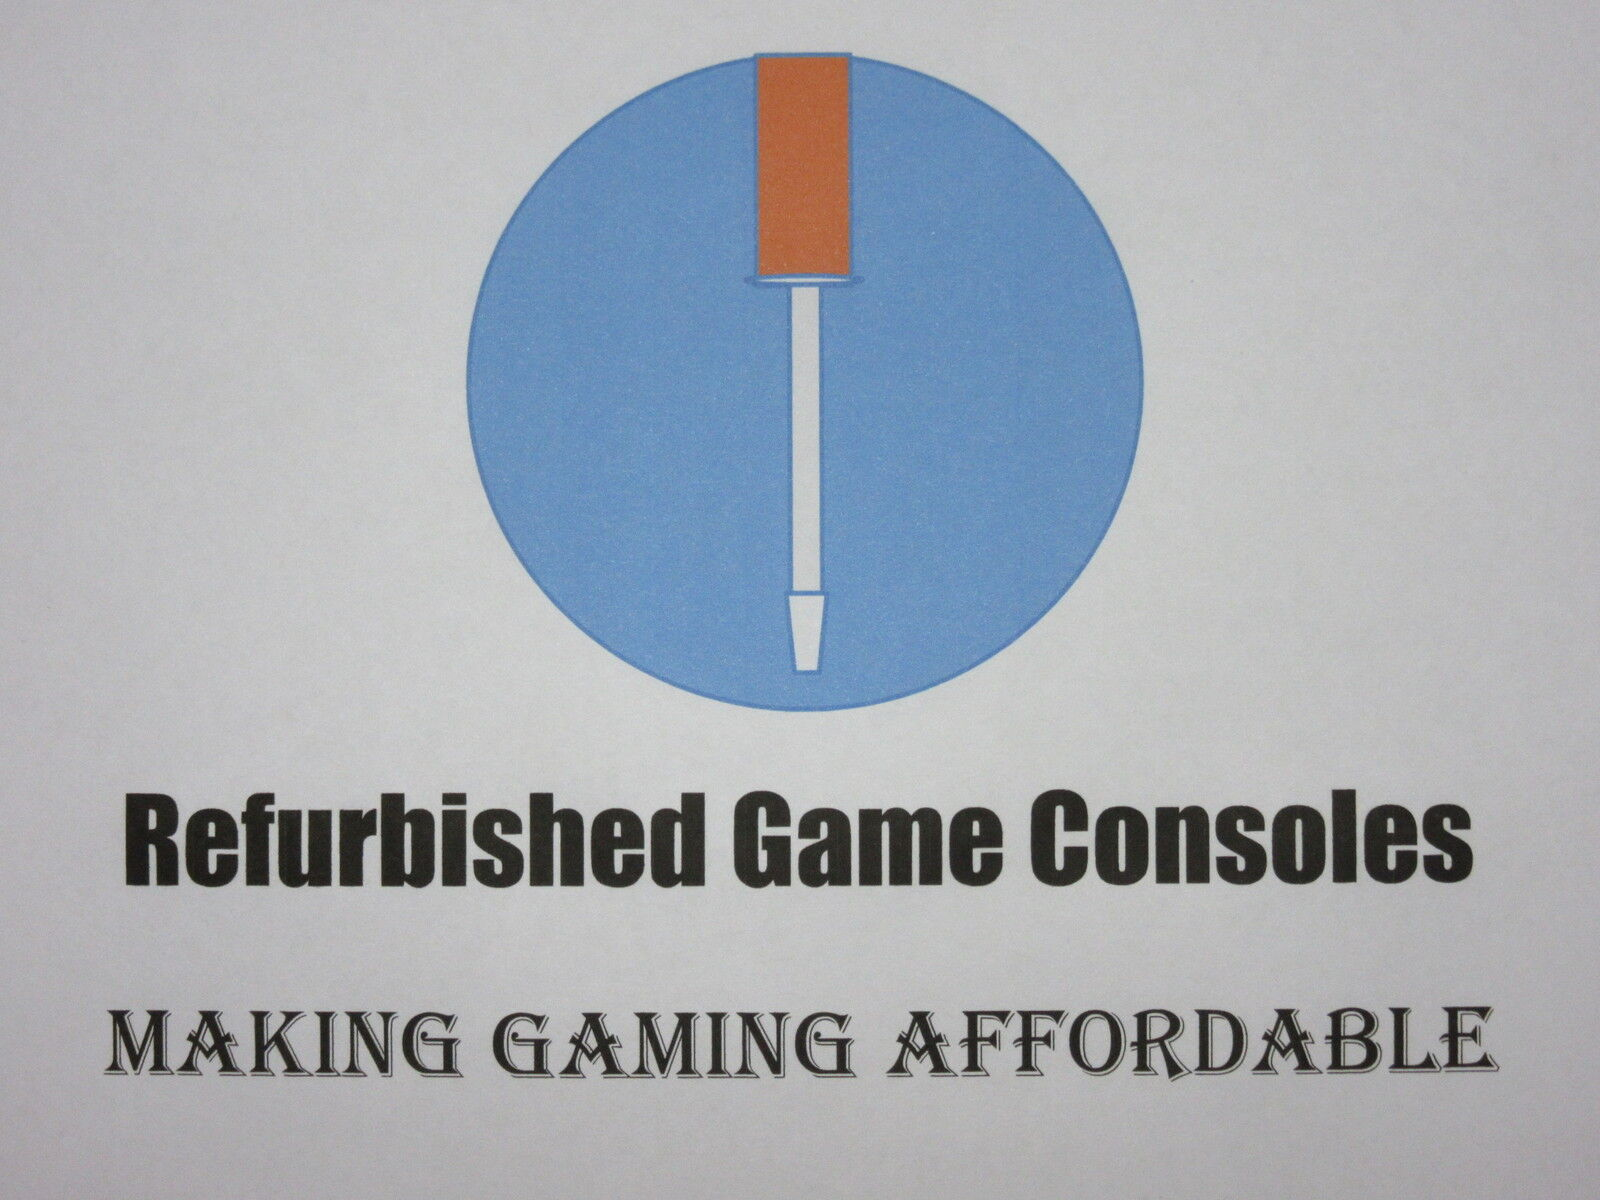 Refurbished Game Consoles